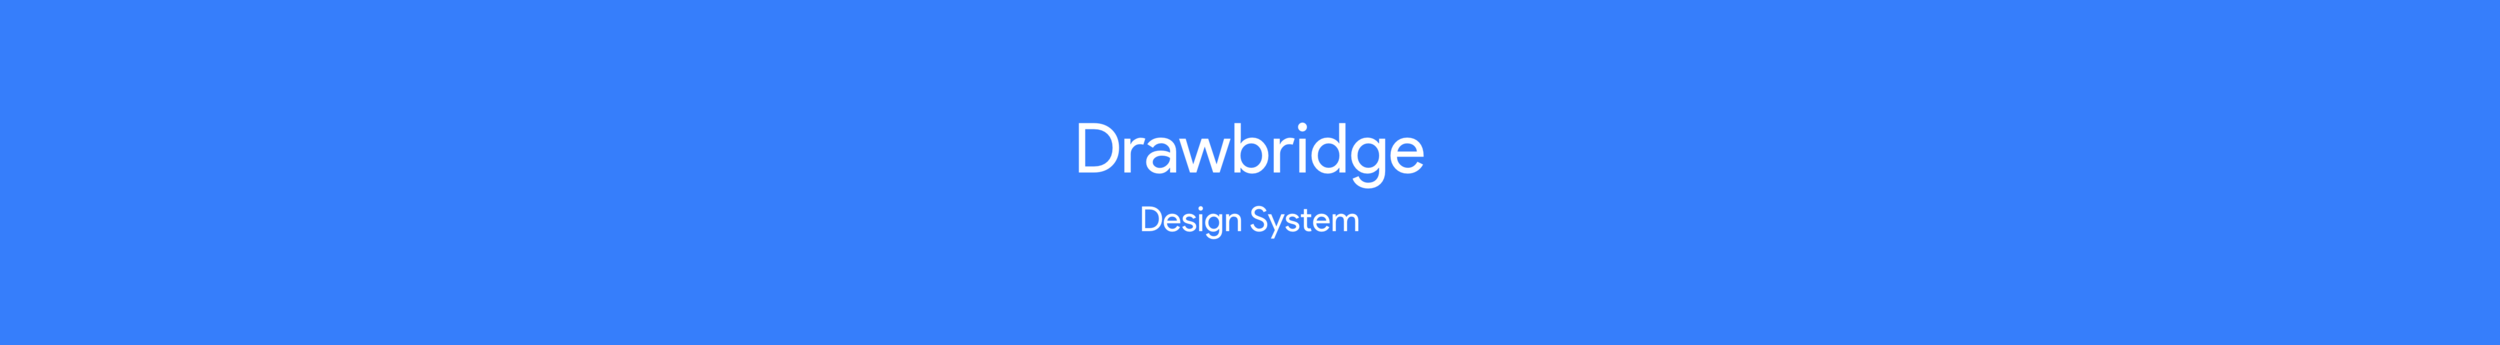 Drawbridge_banner.png